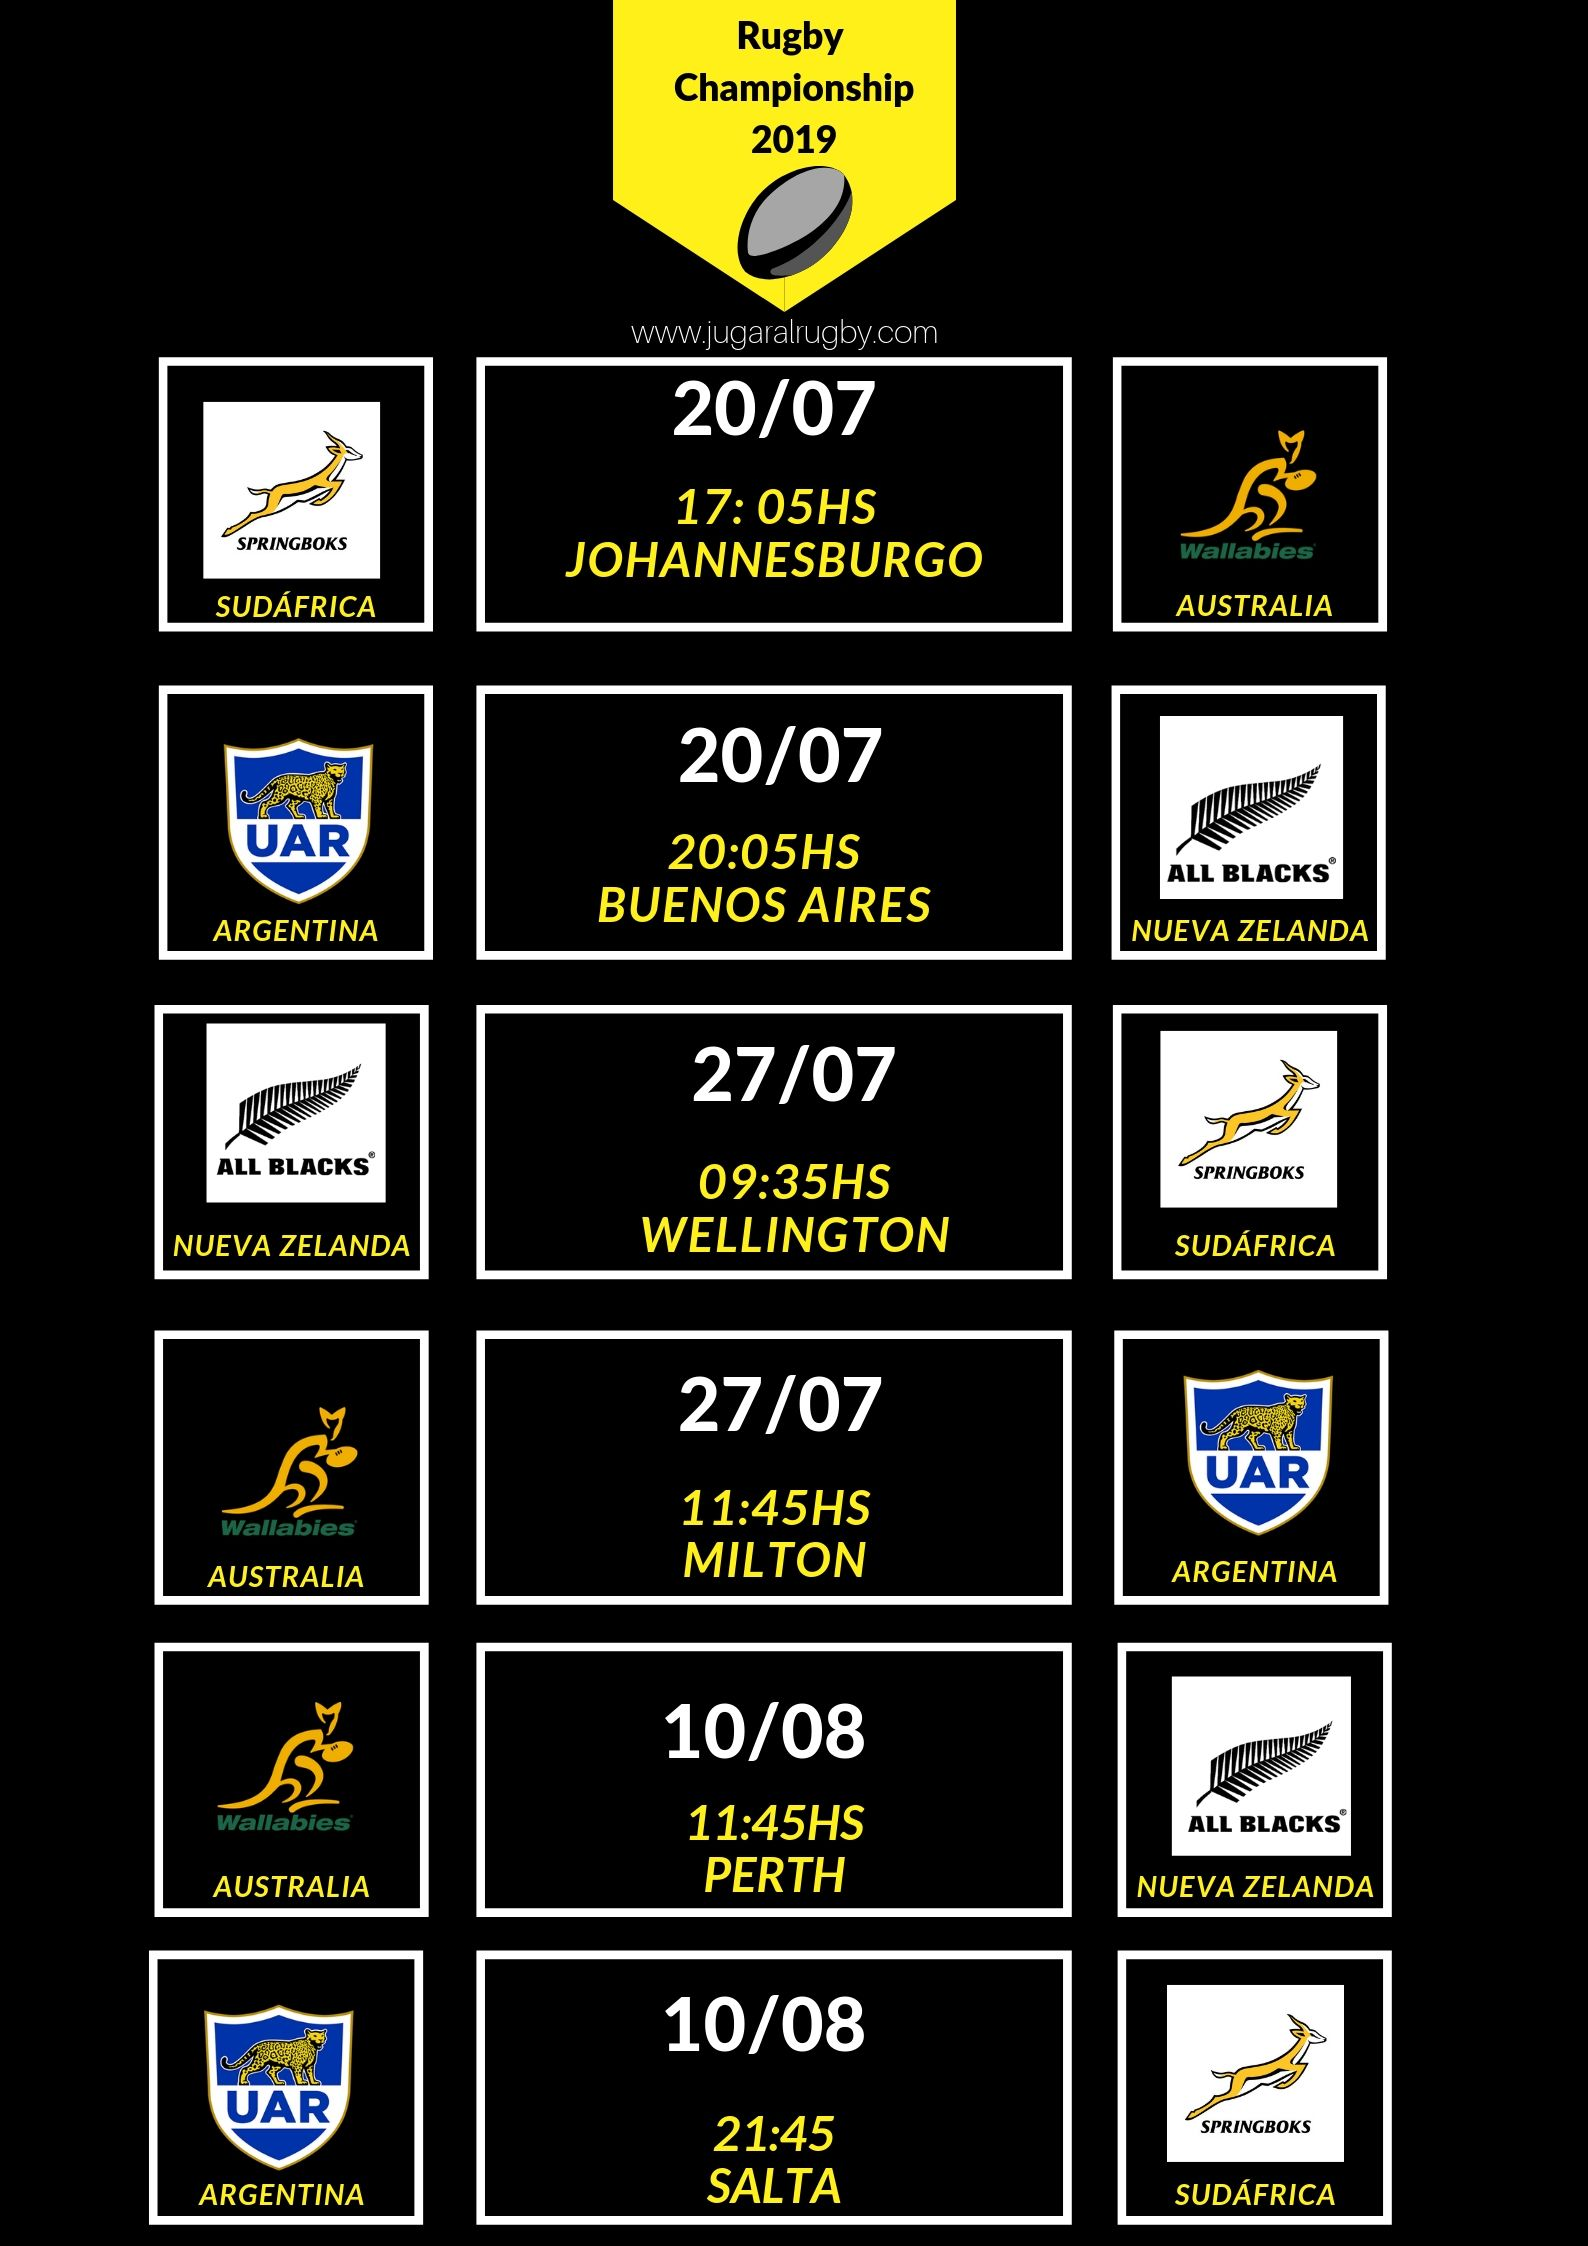 horarios rugby championship